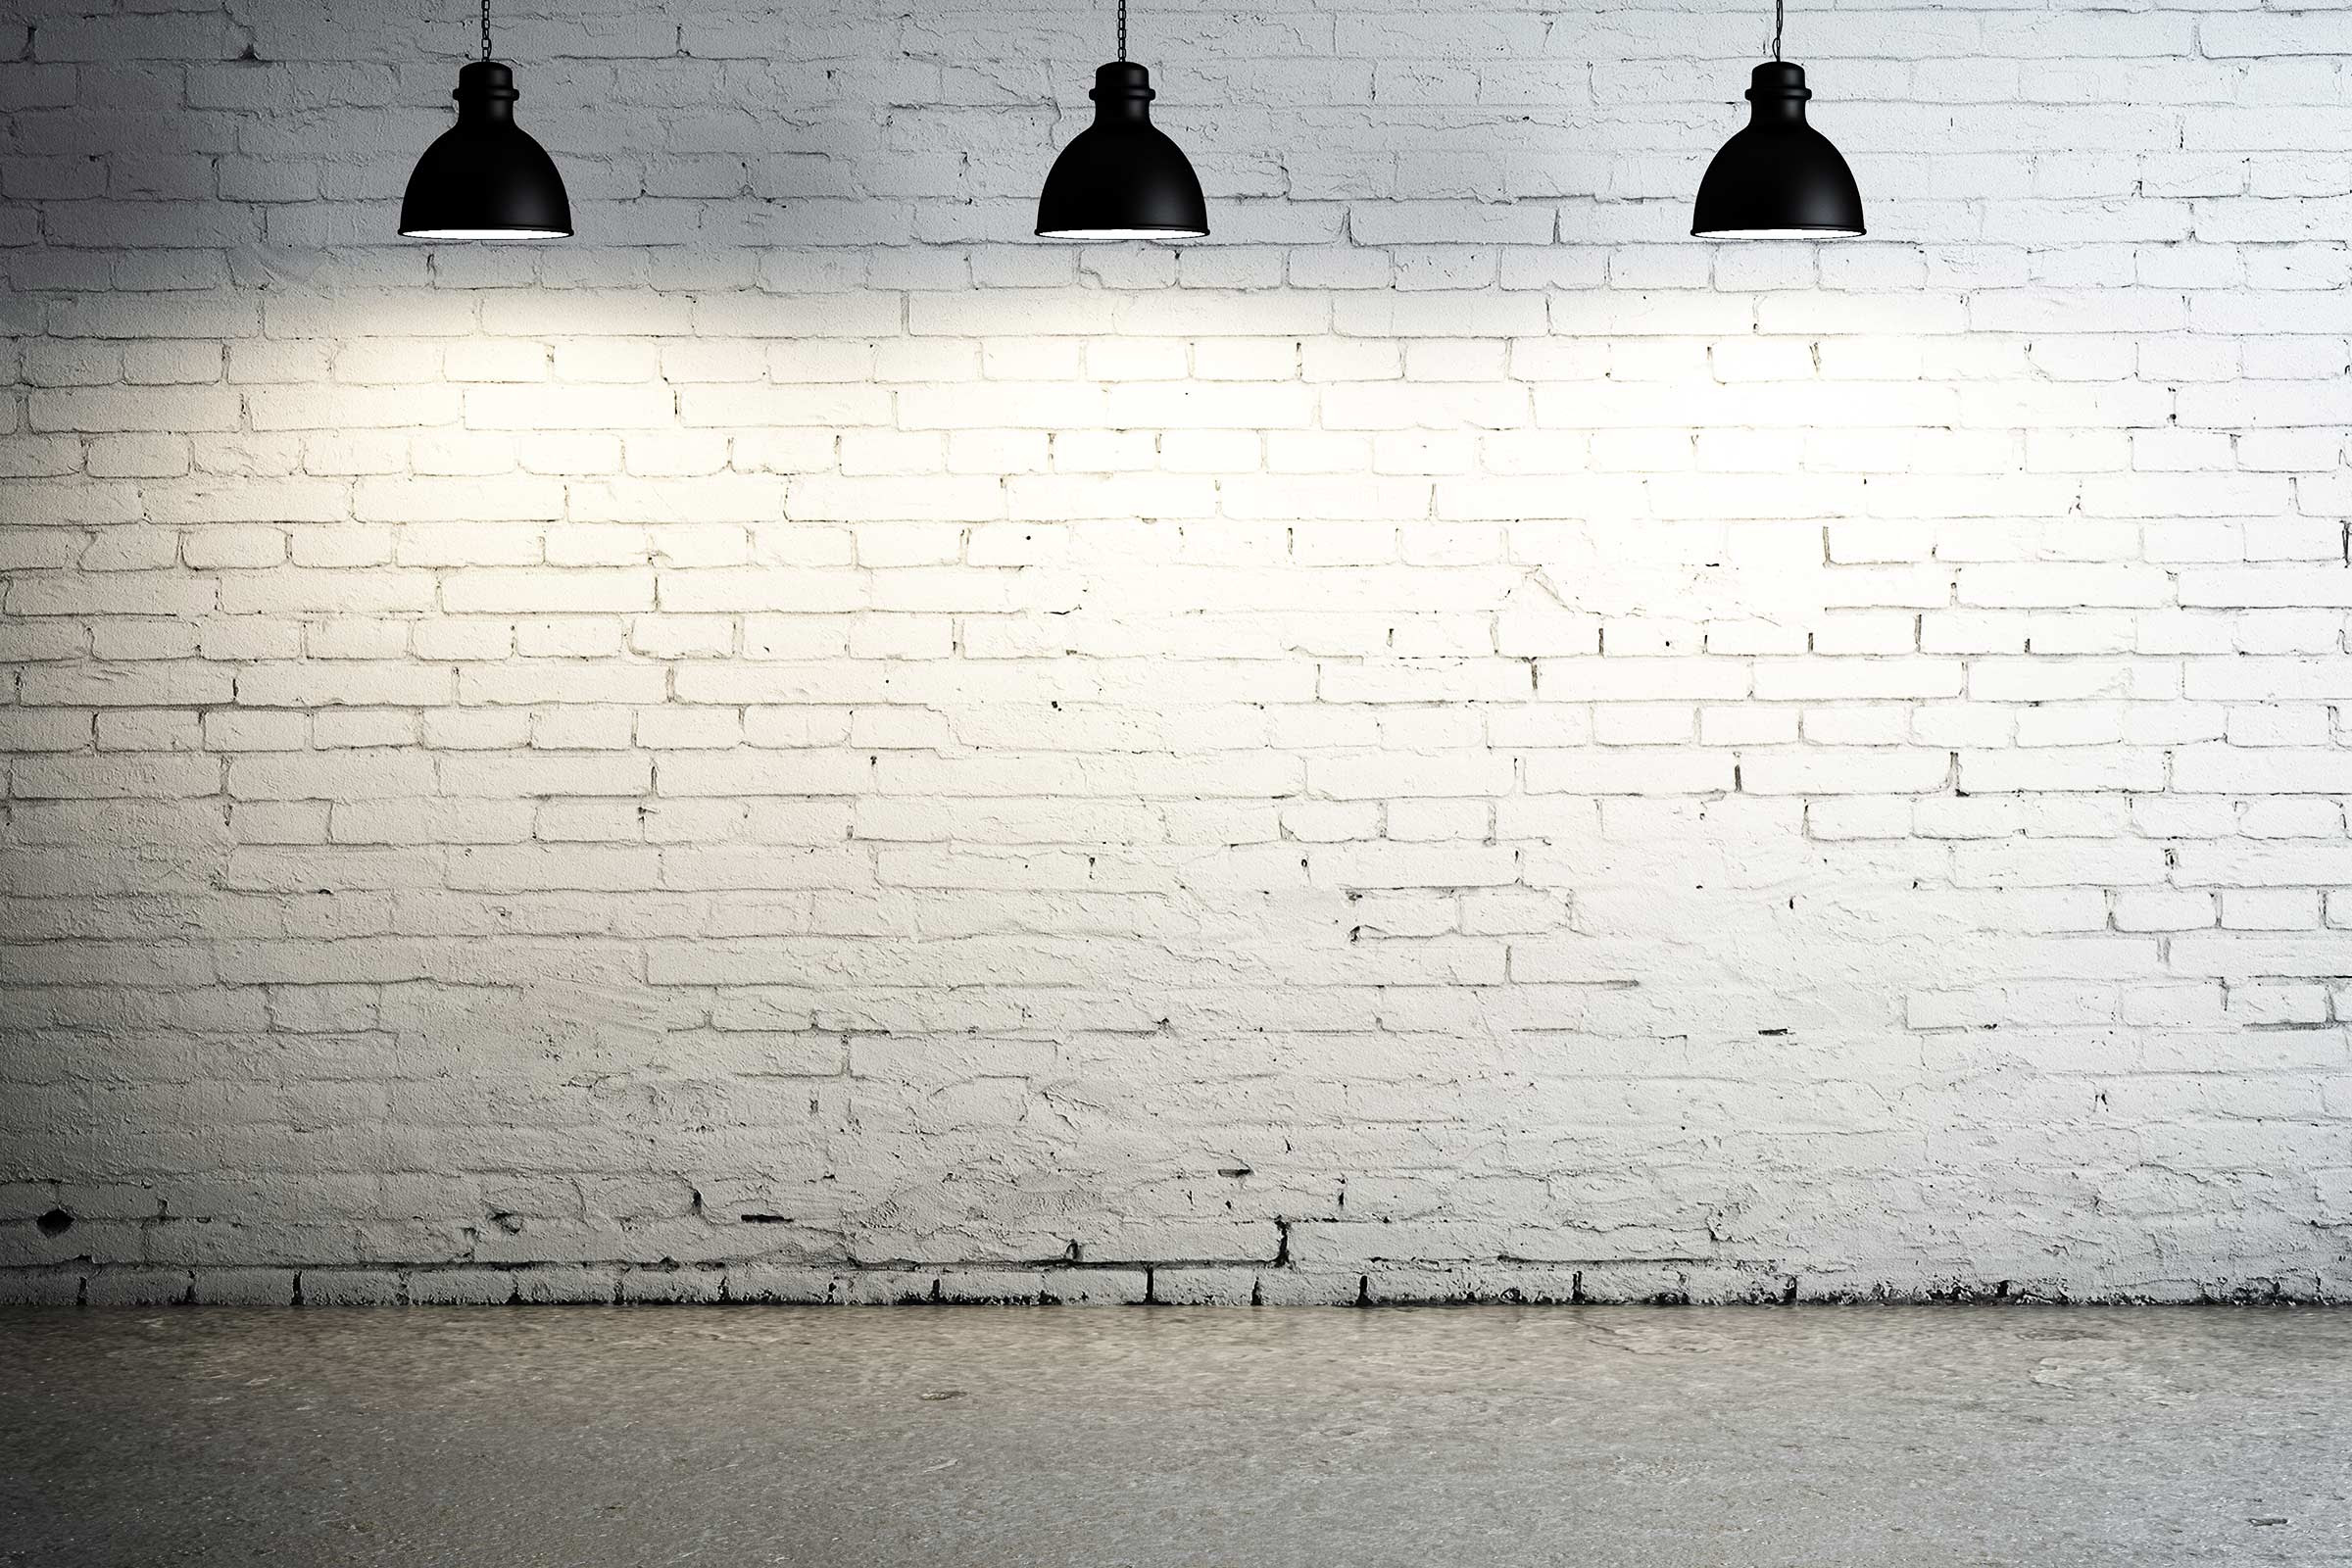 Blank walls get the look featured